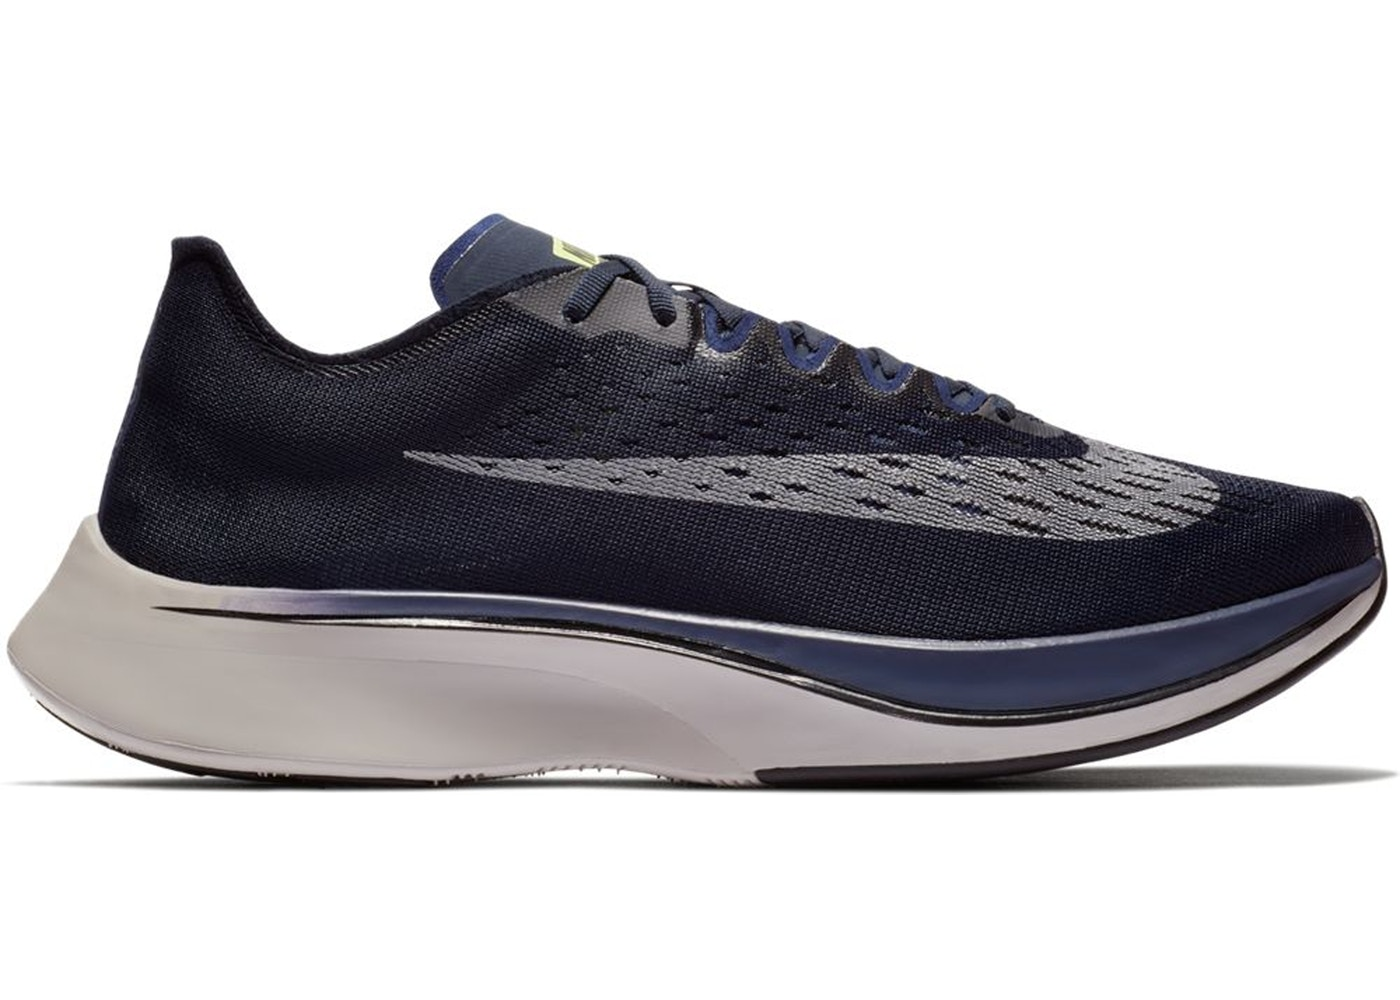 cheap sale huge selection of super cheap Nike Zoom Vaporfly 4% Obsidian